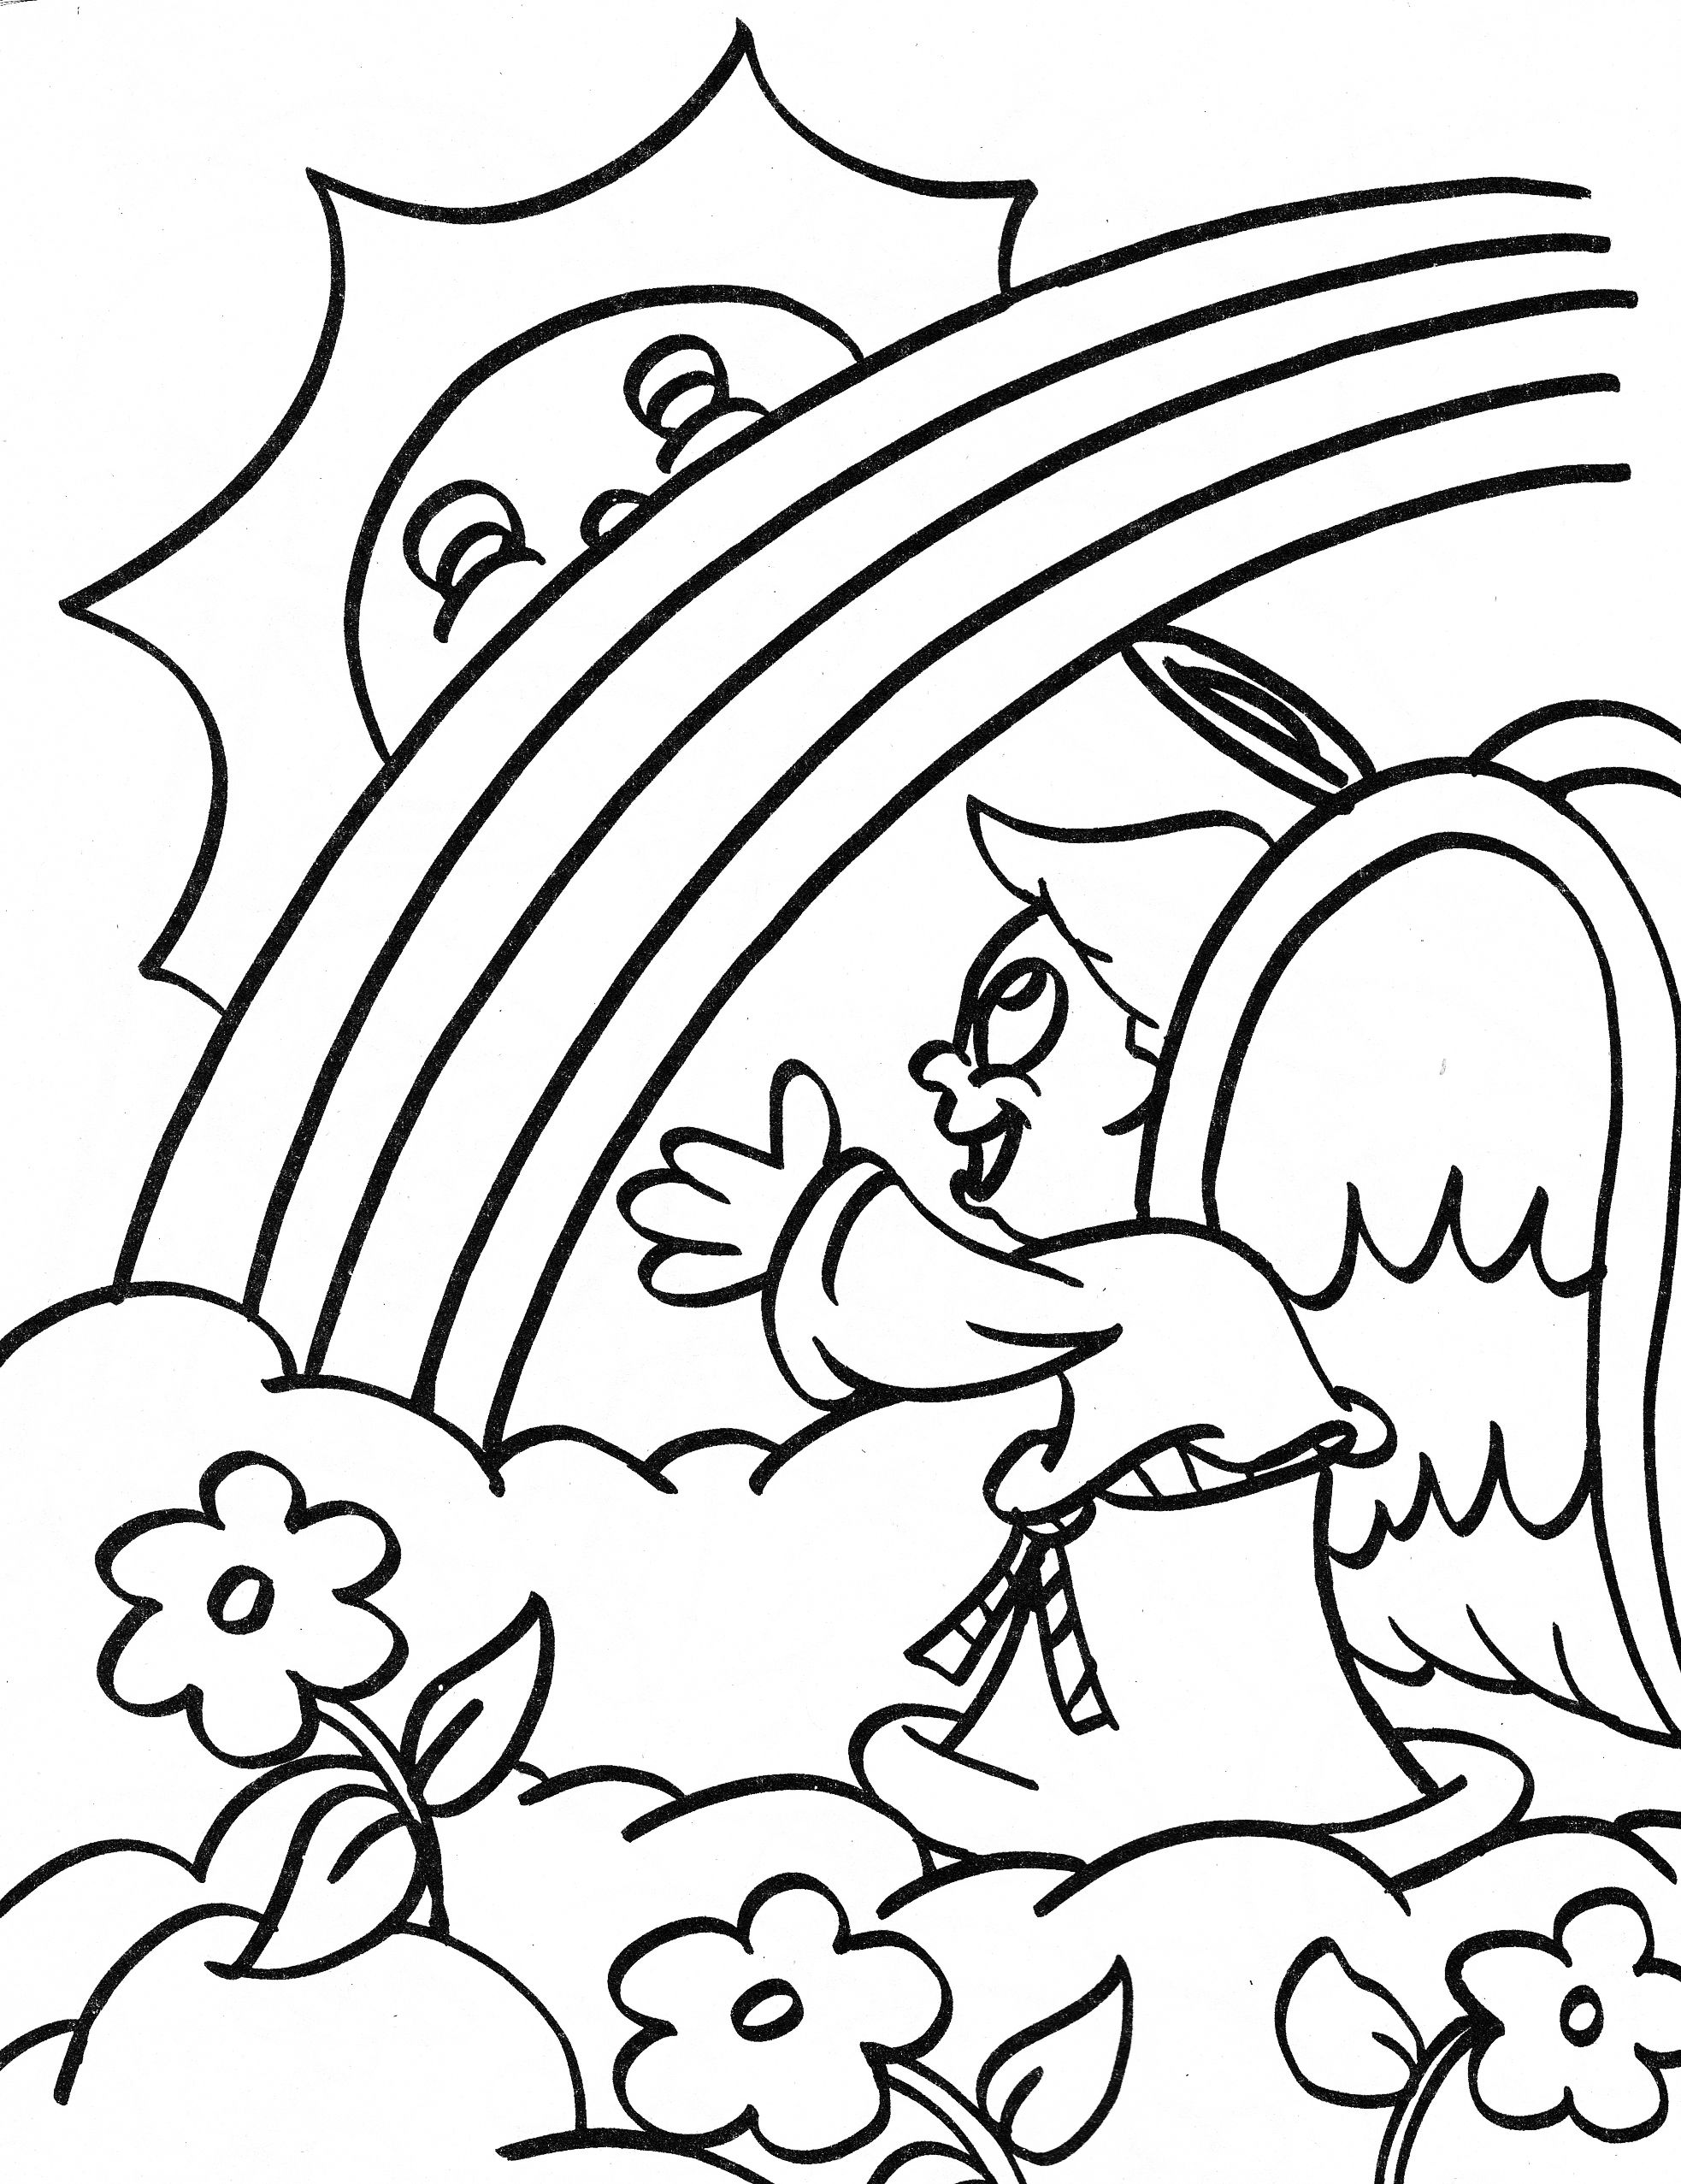 angel coloring page - boy angel and rainbow | Coloring pages scanned ...